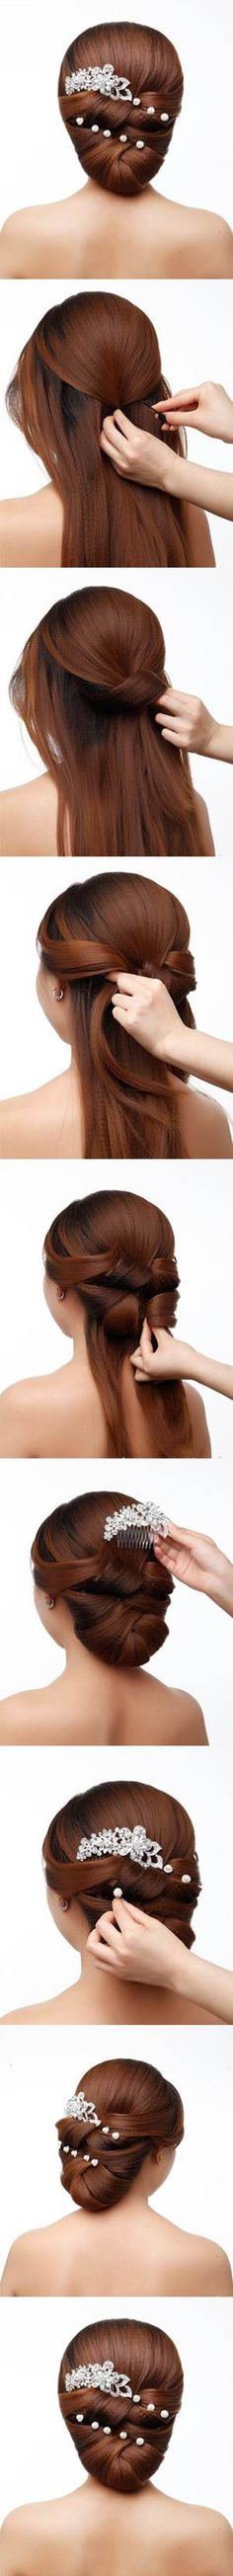 DIY Elegant Bridal Hairstyle | iCreativeIdeas.com Like Us on Facebook ==> https://www.facebook.com/icreativeideas